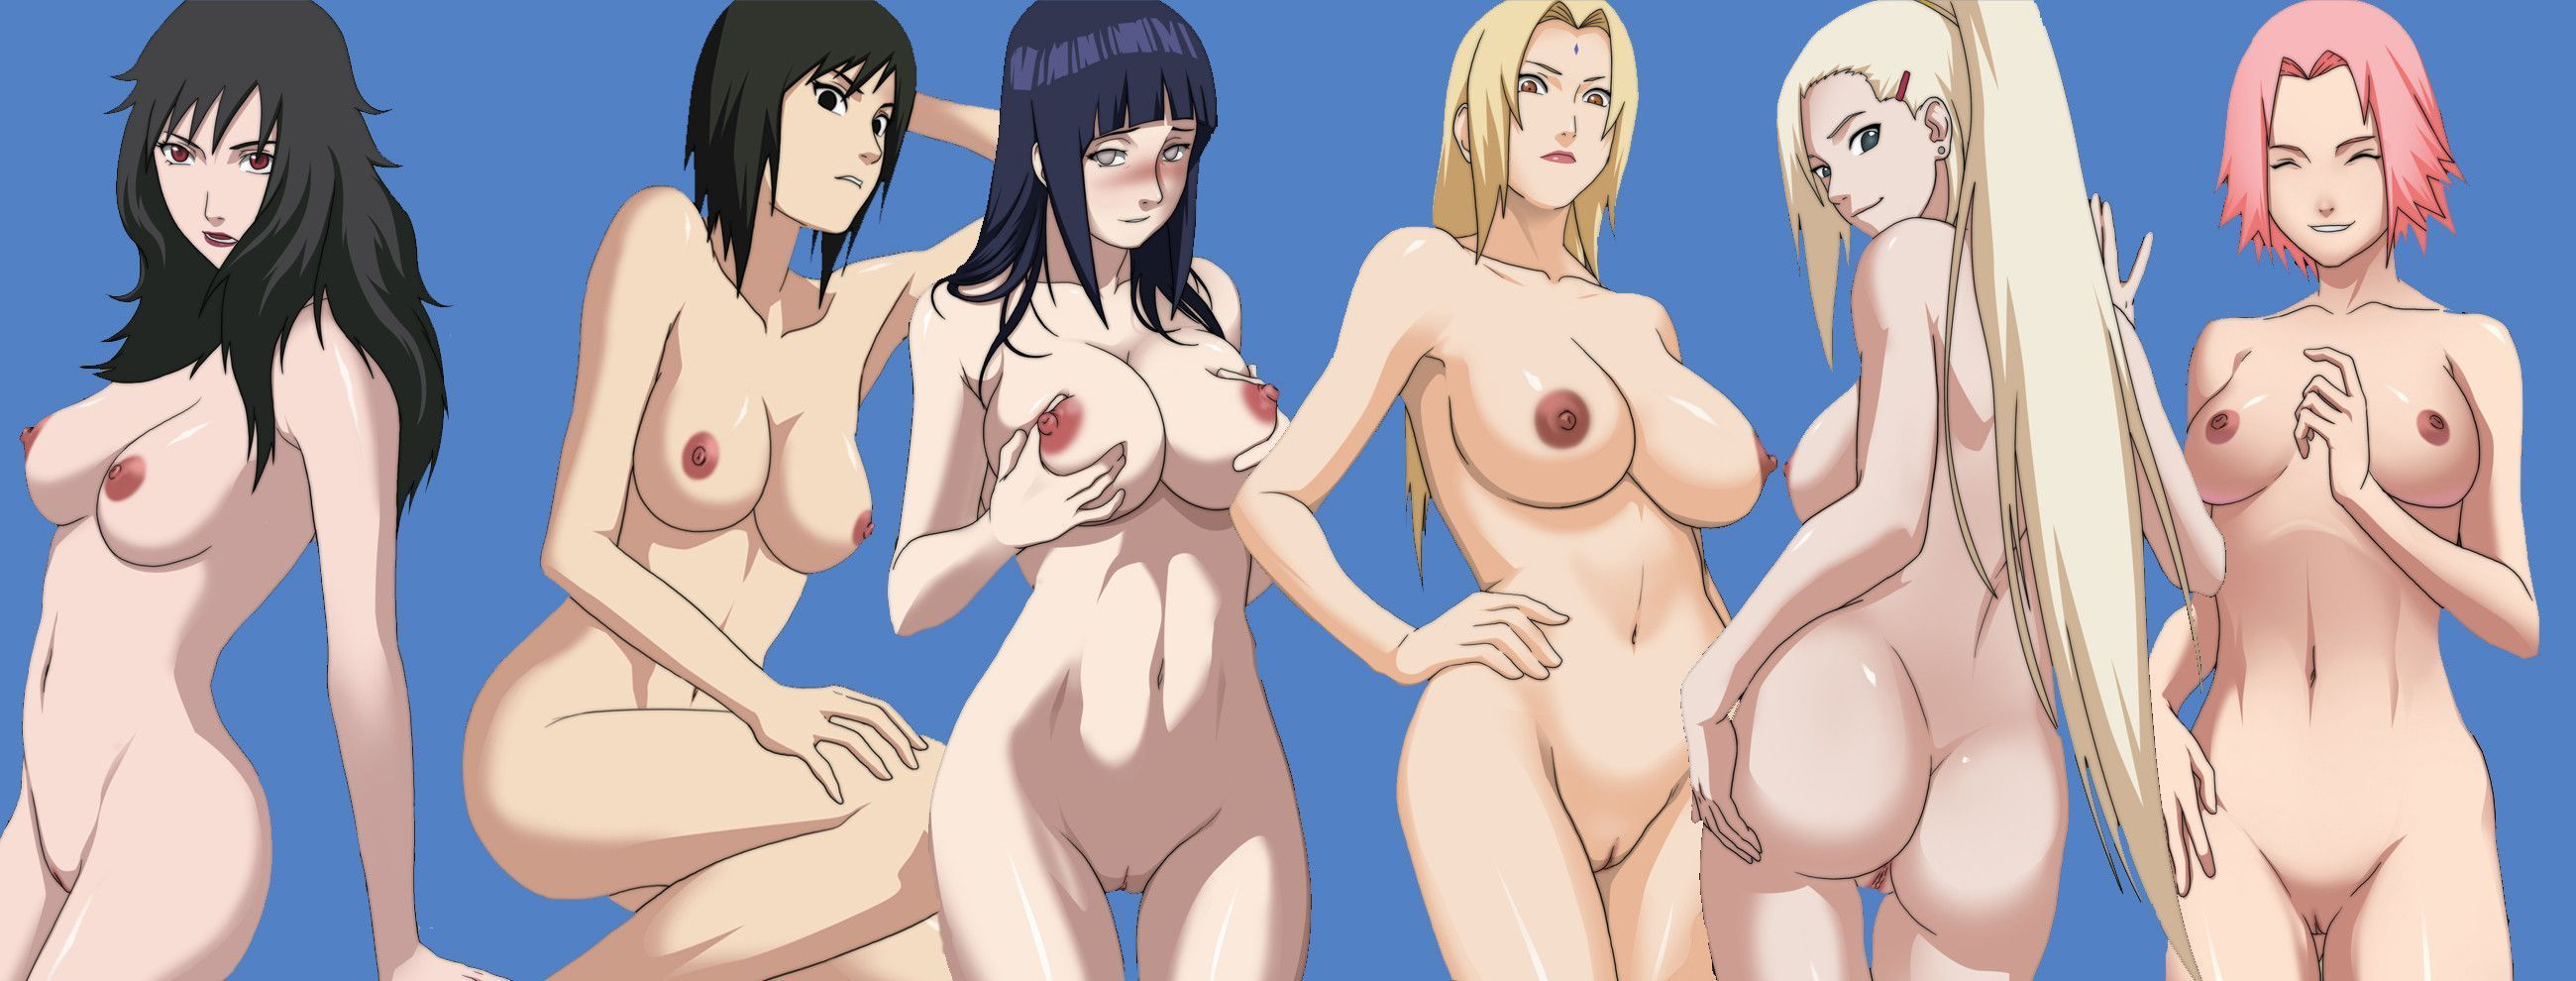 Are naruto girls nude pics apologise